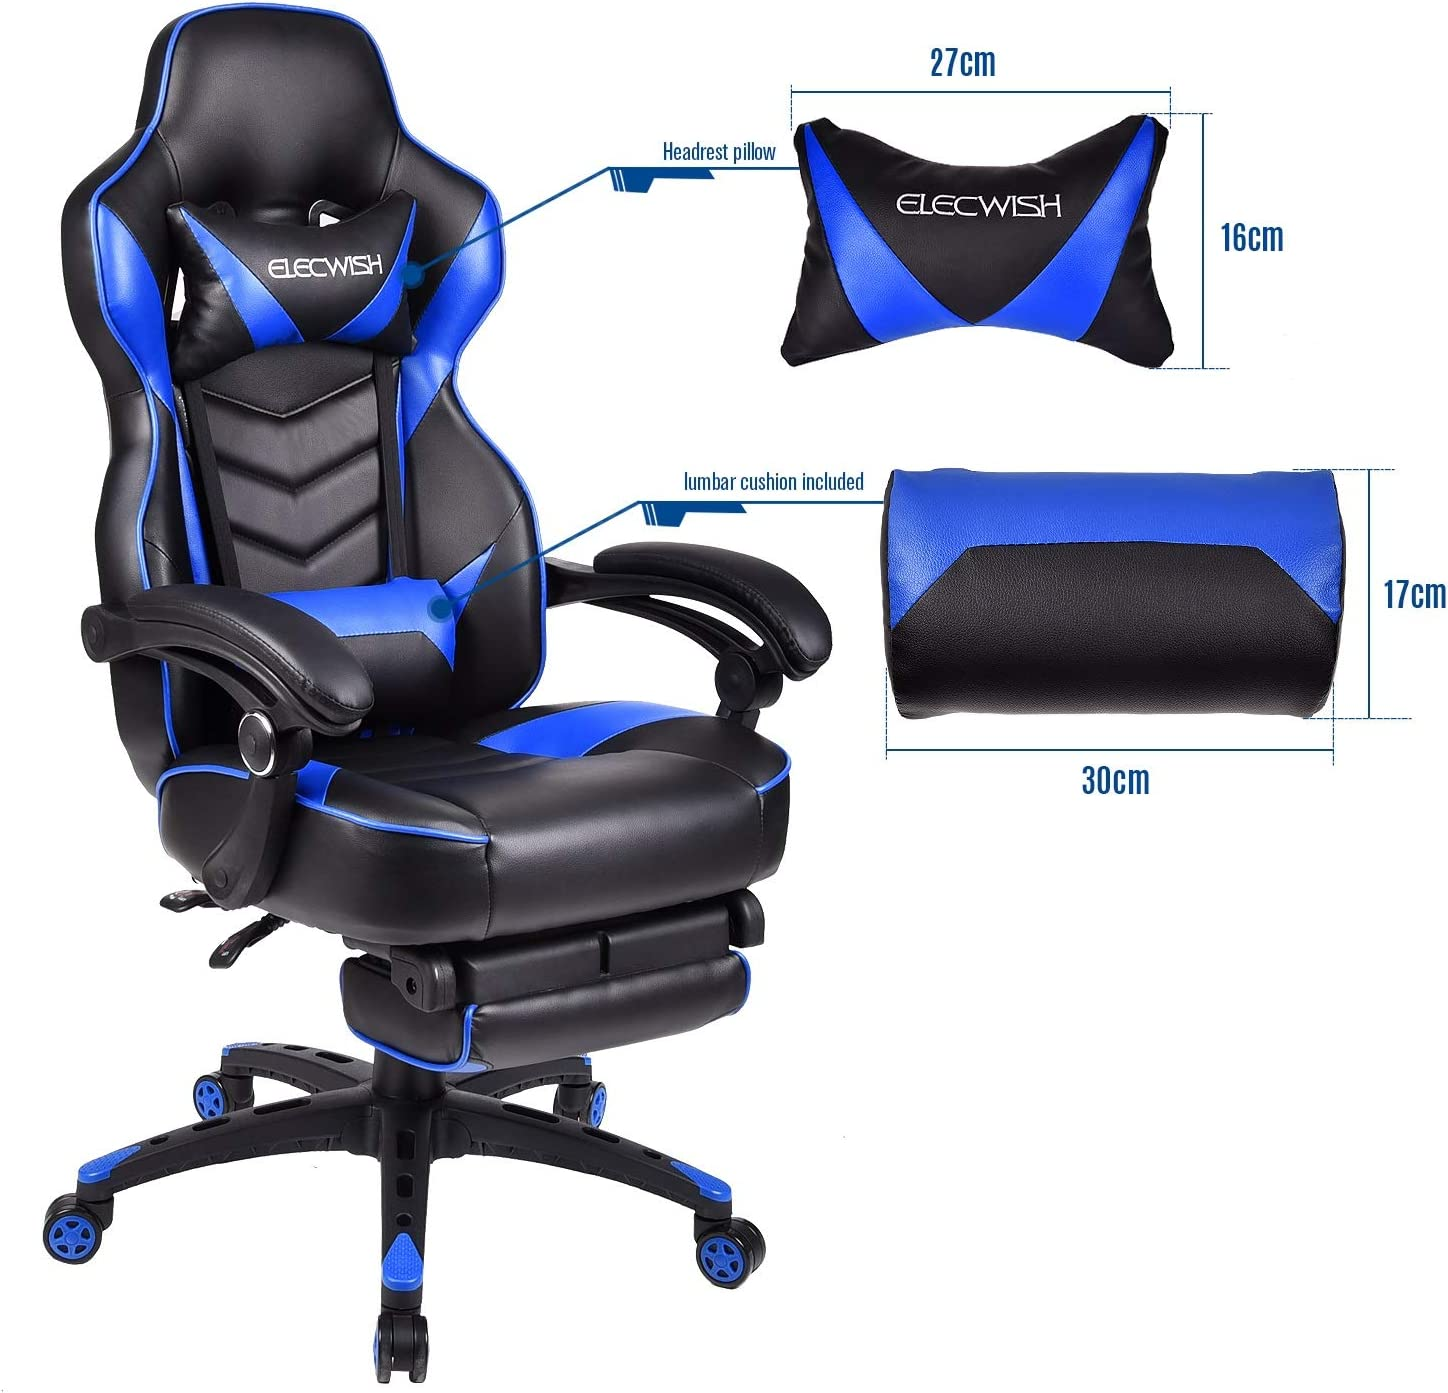 Swivel Racing Chair PU Leather Video Gaming High Back Chairs Ergonomic Office Chairs With Arm rest and Cushion,Blue